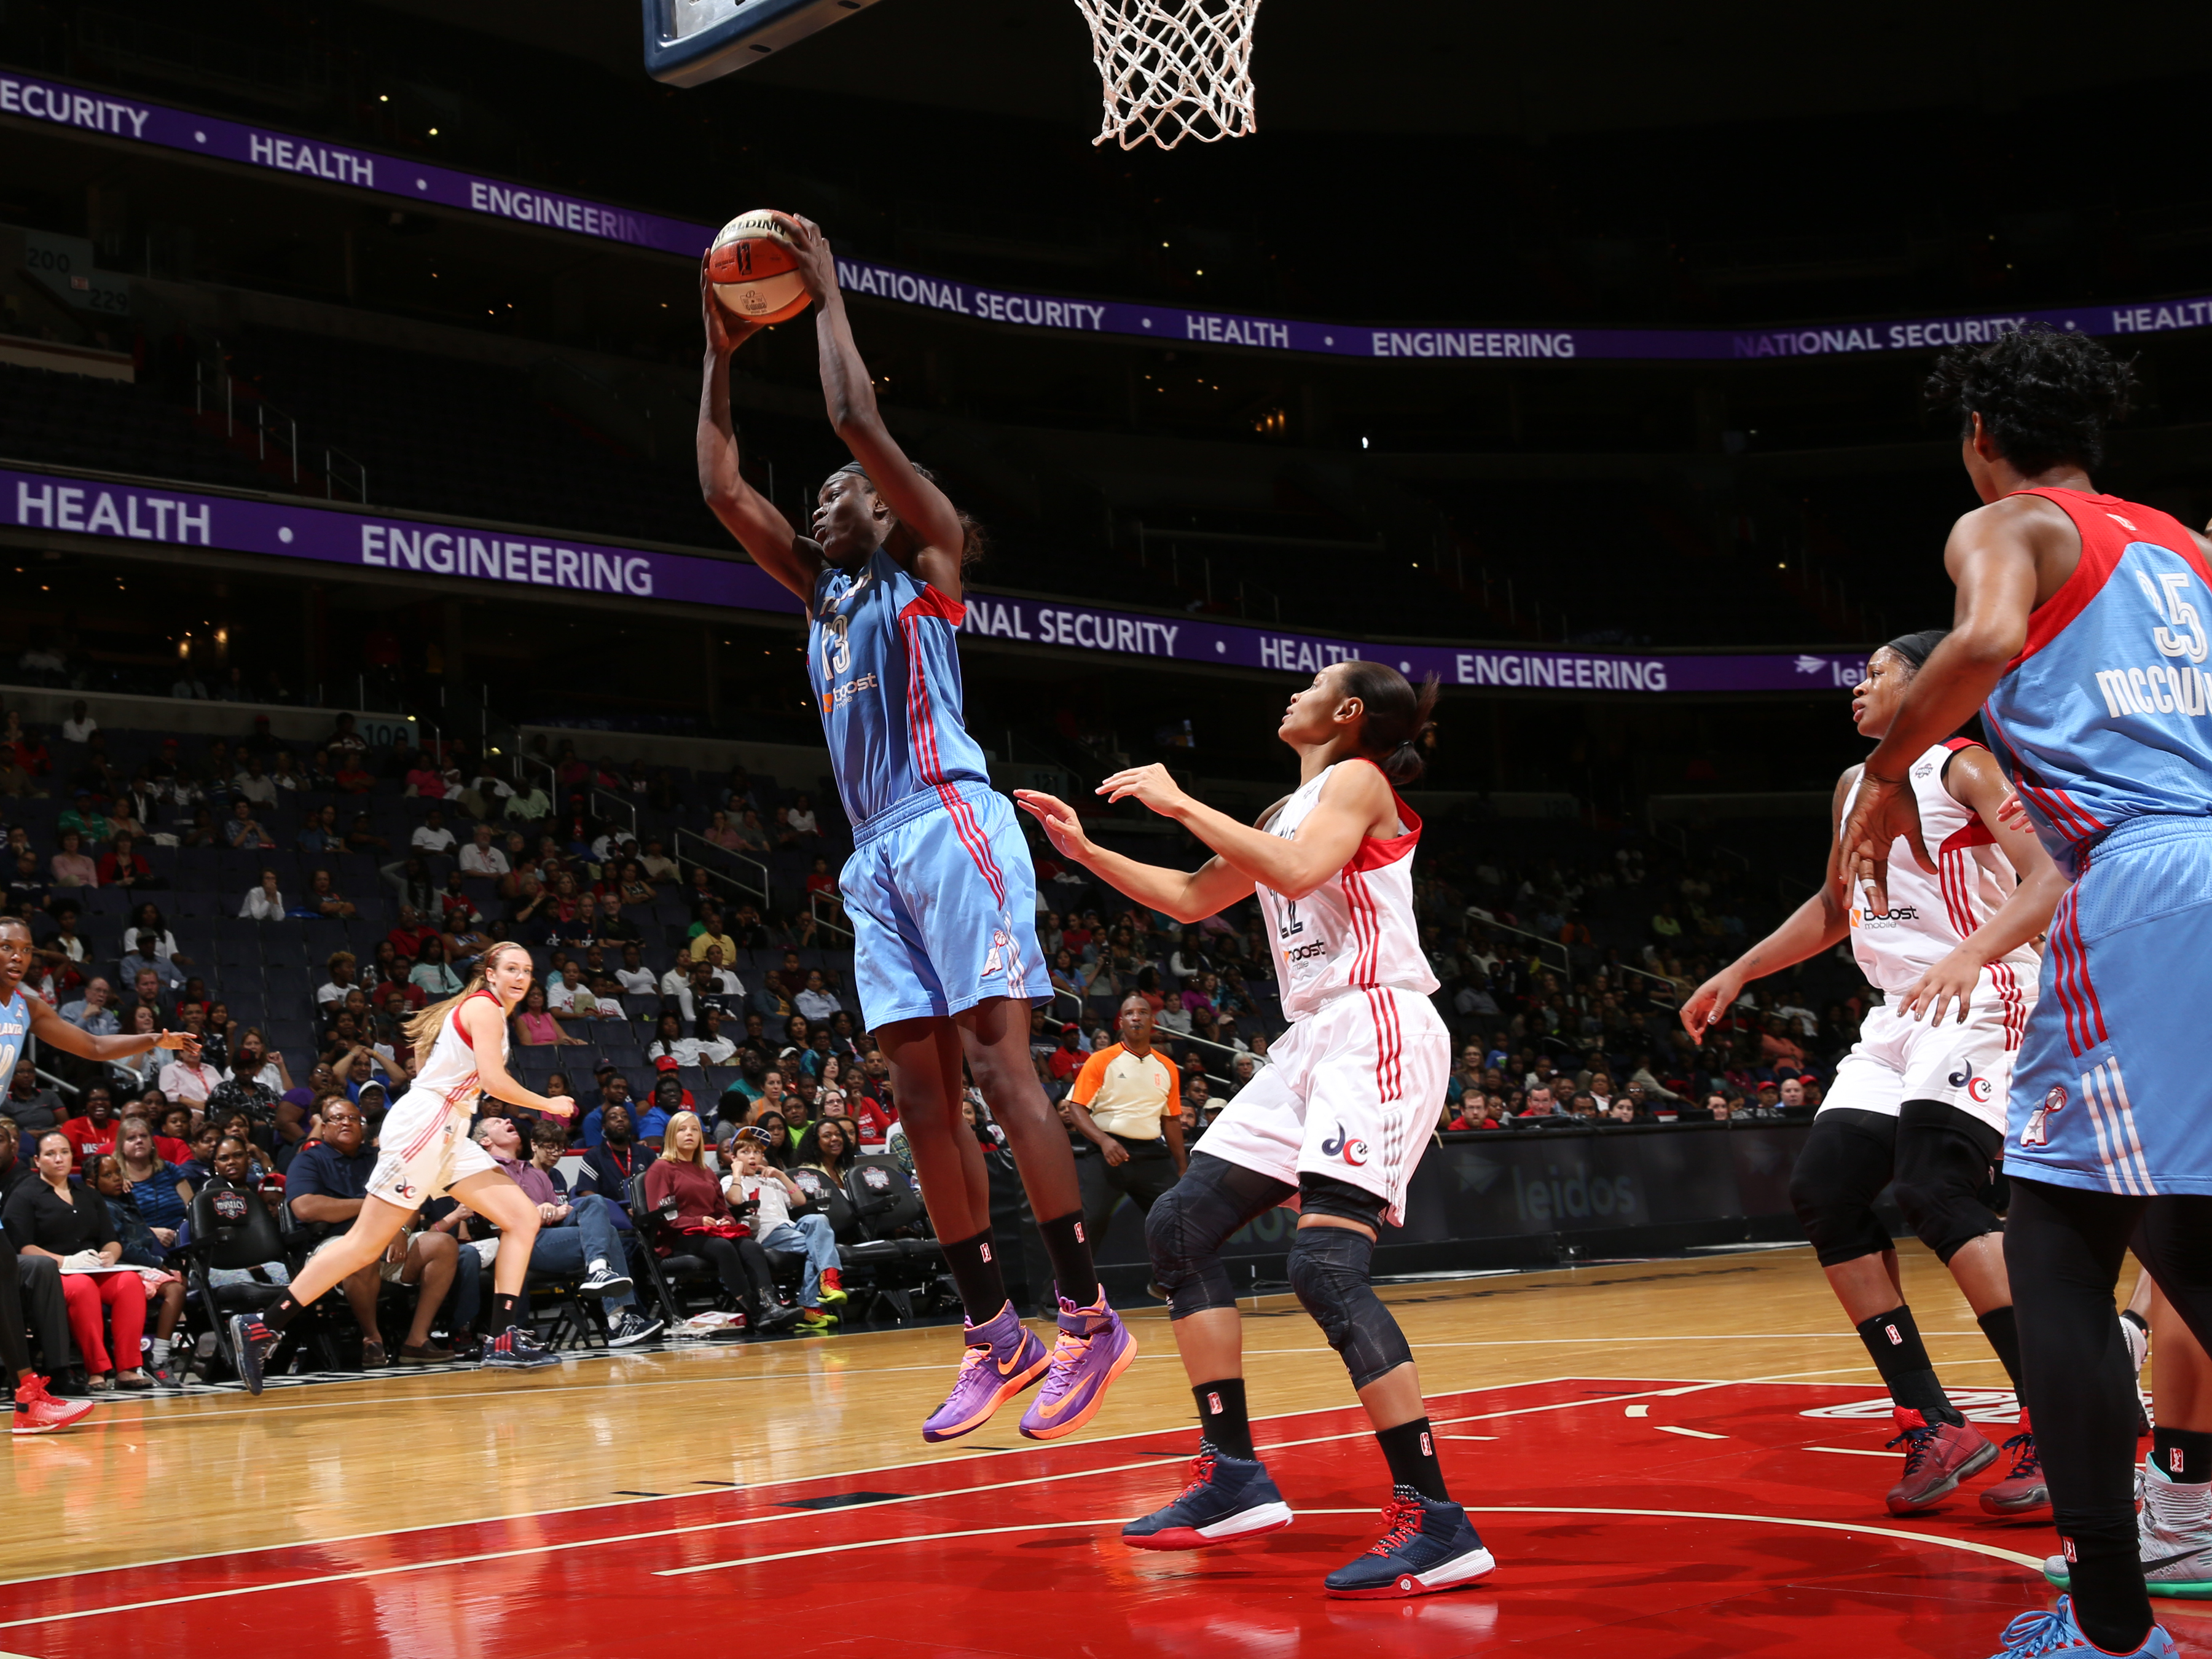 WASHINGTON, DC - SEPTEMBER 13: Aneika Henry #13 of the Atlanta Dream grabs the rebound against the Washington Mystics on September 13, 2015 at the Verizon Center in Washington, DC. (Photo by Stephen Gosling/NBAE via Getty Images)